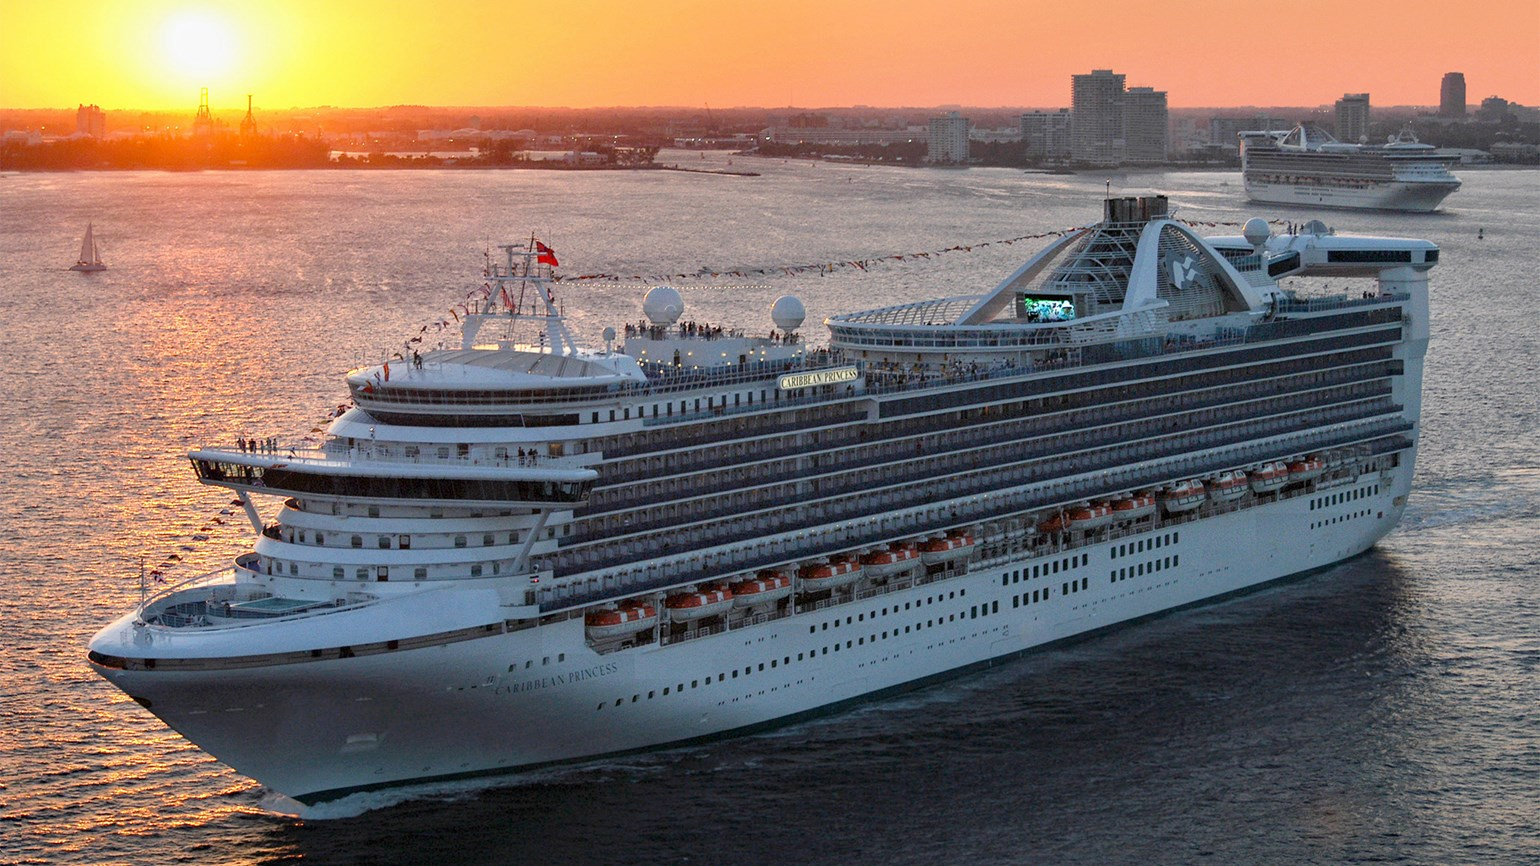 Princess Cruises fined $40M for ocean pollution, crew's cover-up